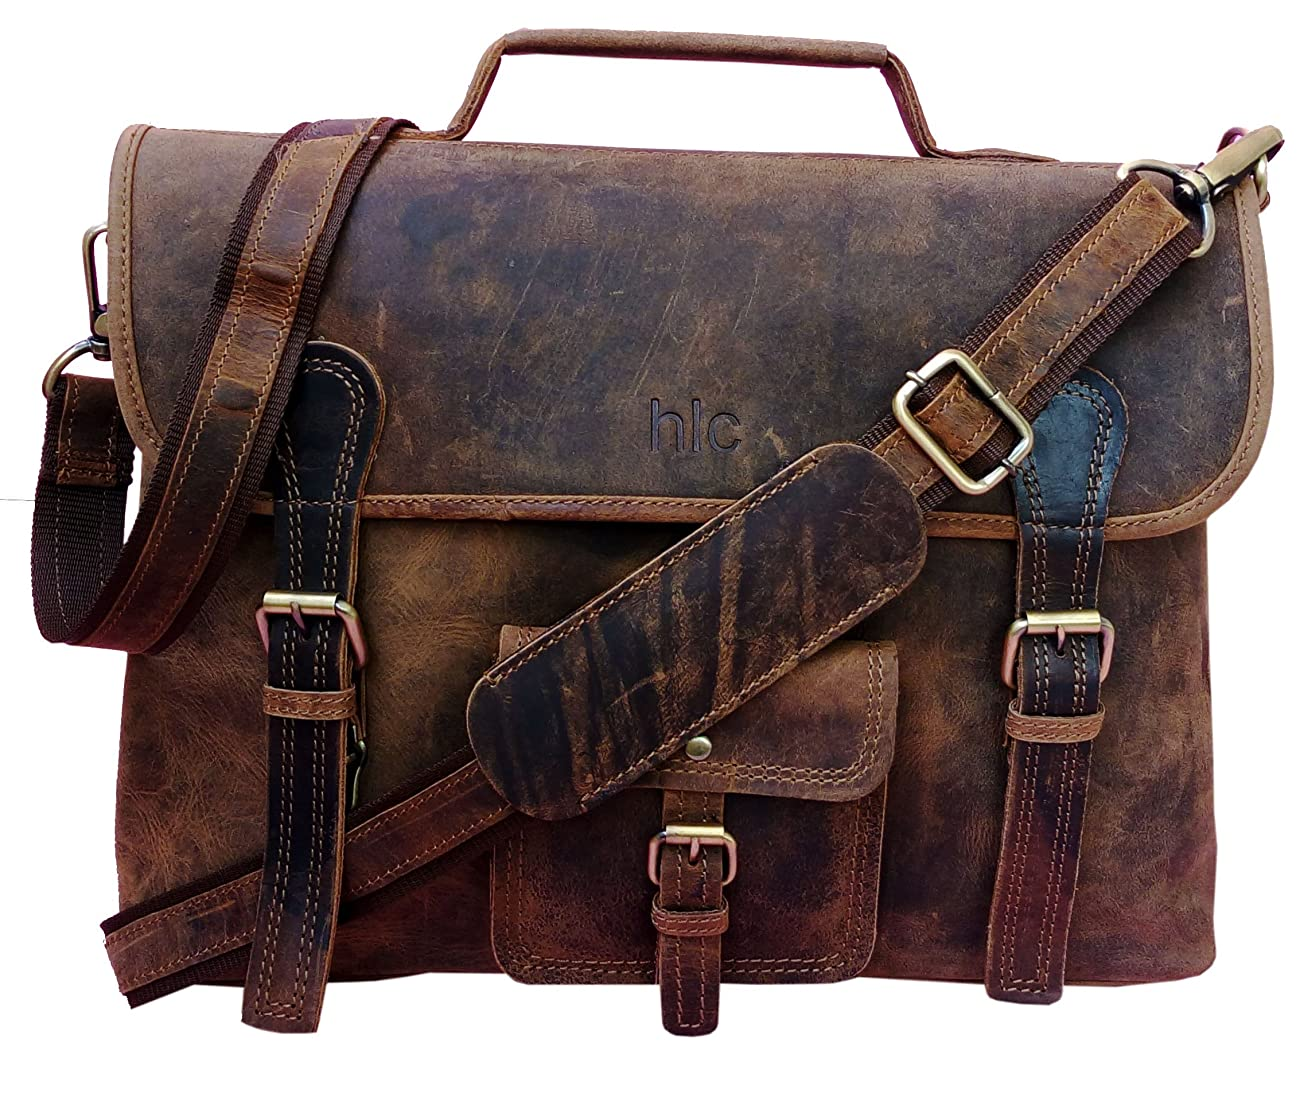 Handolederco. Vintage Leather Laptop Bag 15